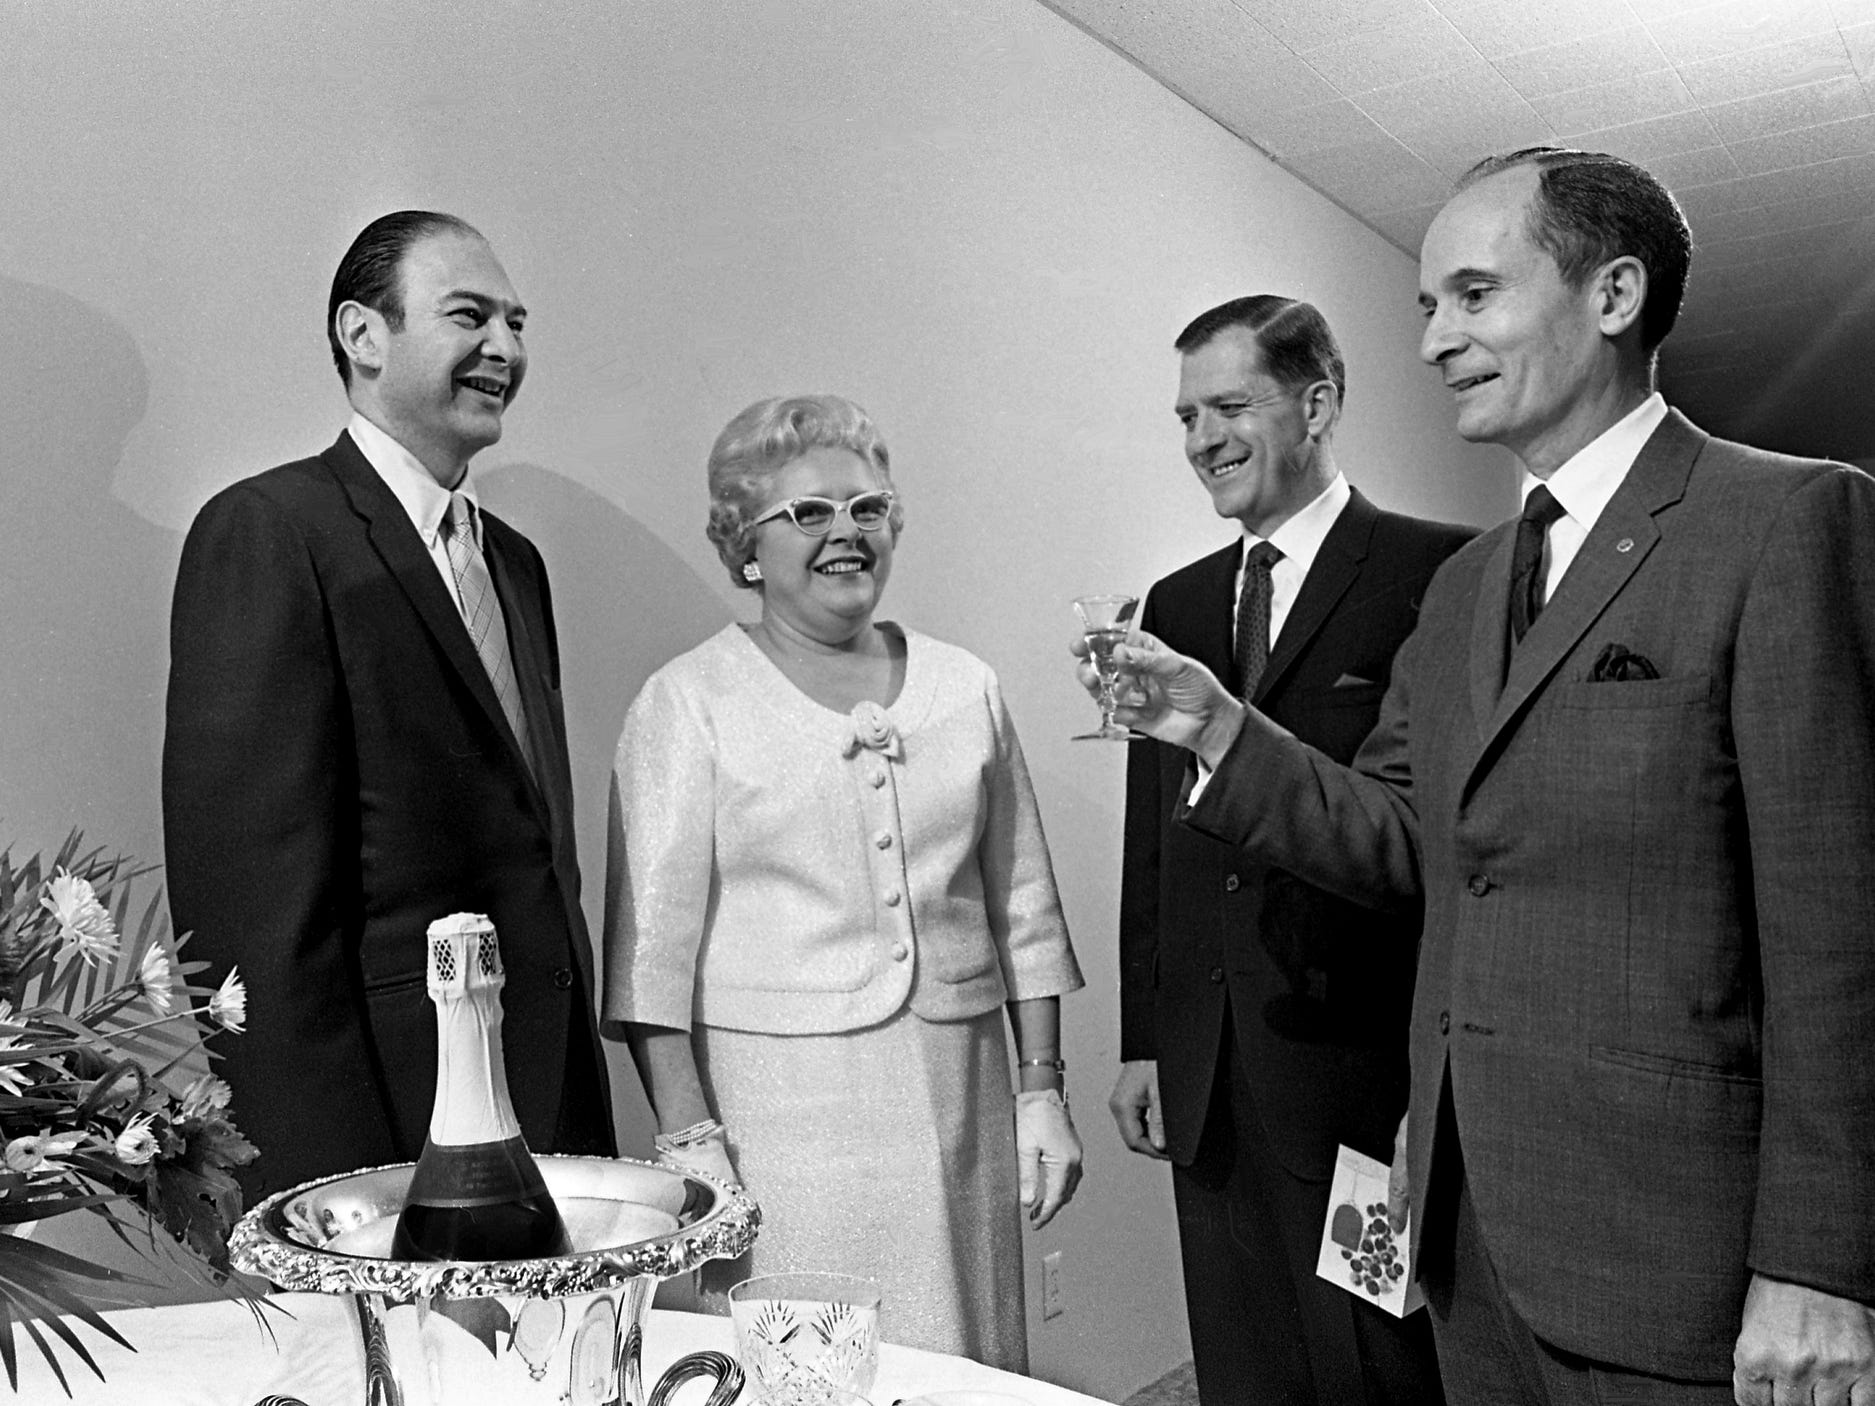 From left: Norman Lipmahn, Mrs. B. Wade Foster, Hilton Austin, chairman of the dinner, and William O. Echols, Lions Club president, enjoy themselves during the Nashville Lions Club's Valentine party at the Sheraton Motor Inn on Feb. 14, 1969.